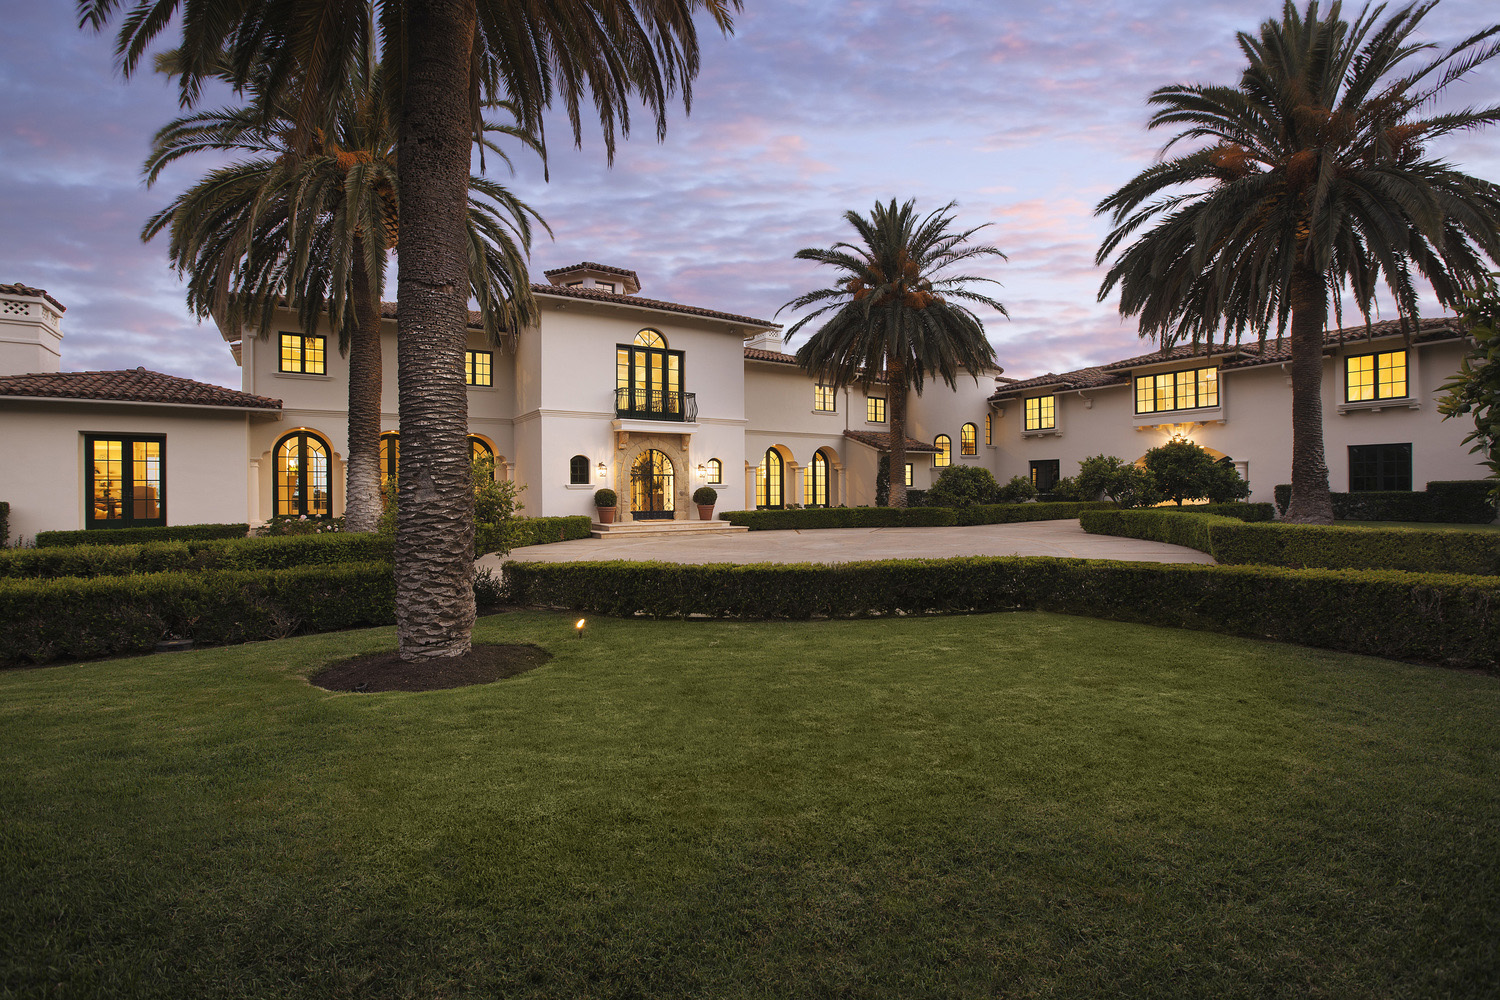 Mediterranean Style Mansion in California